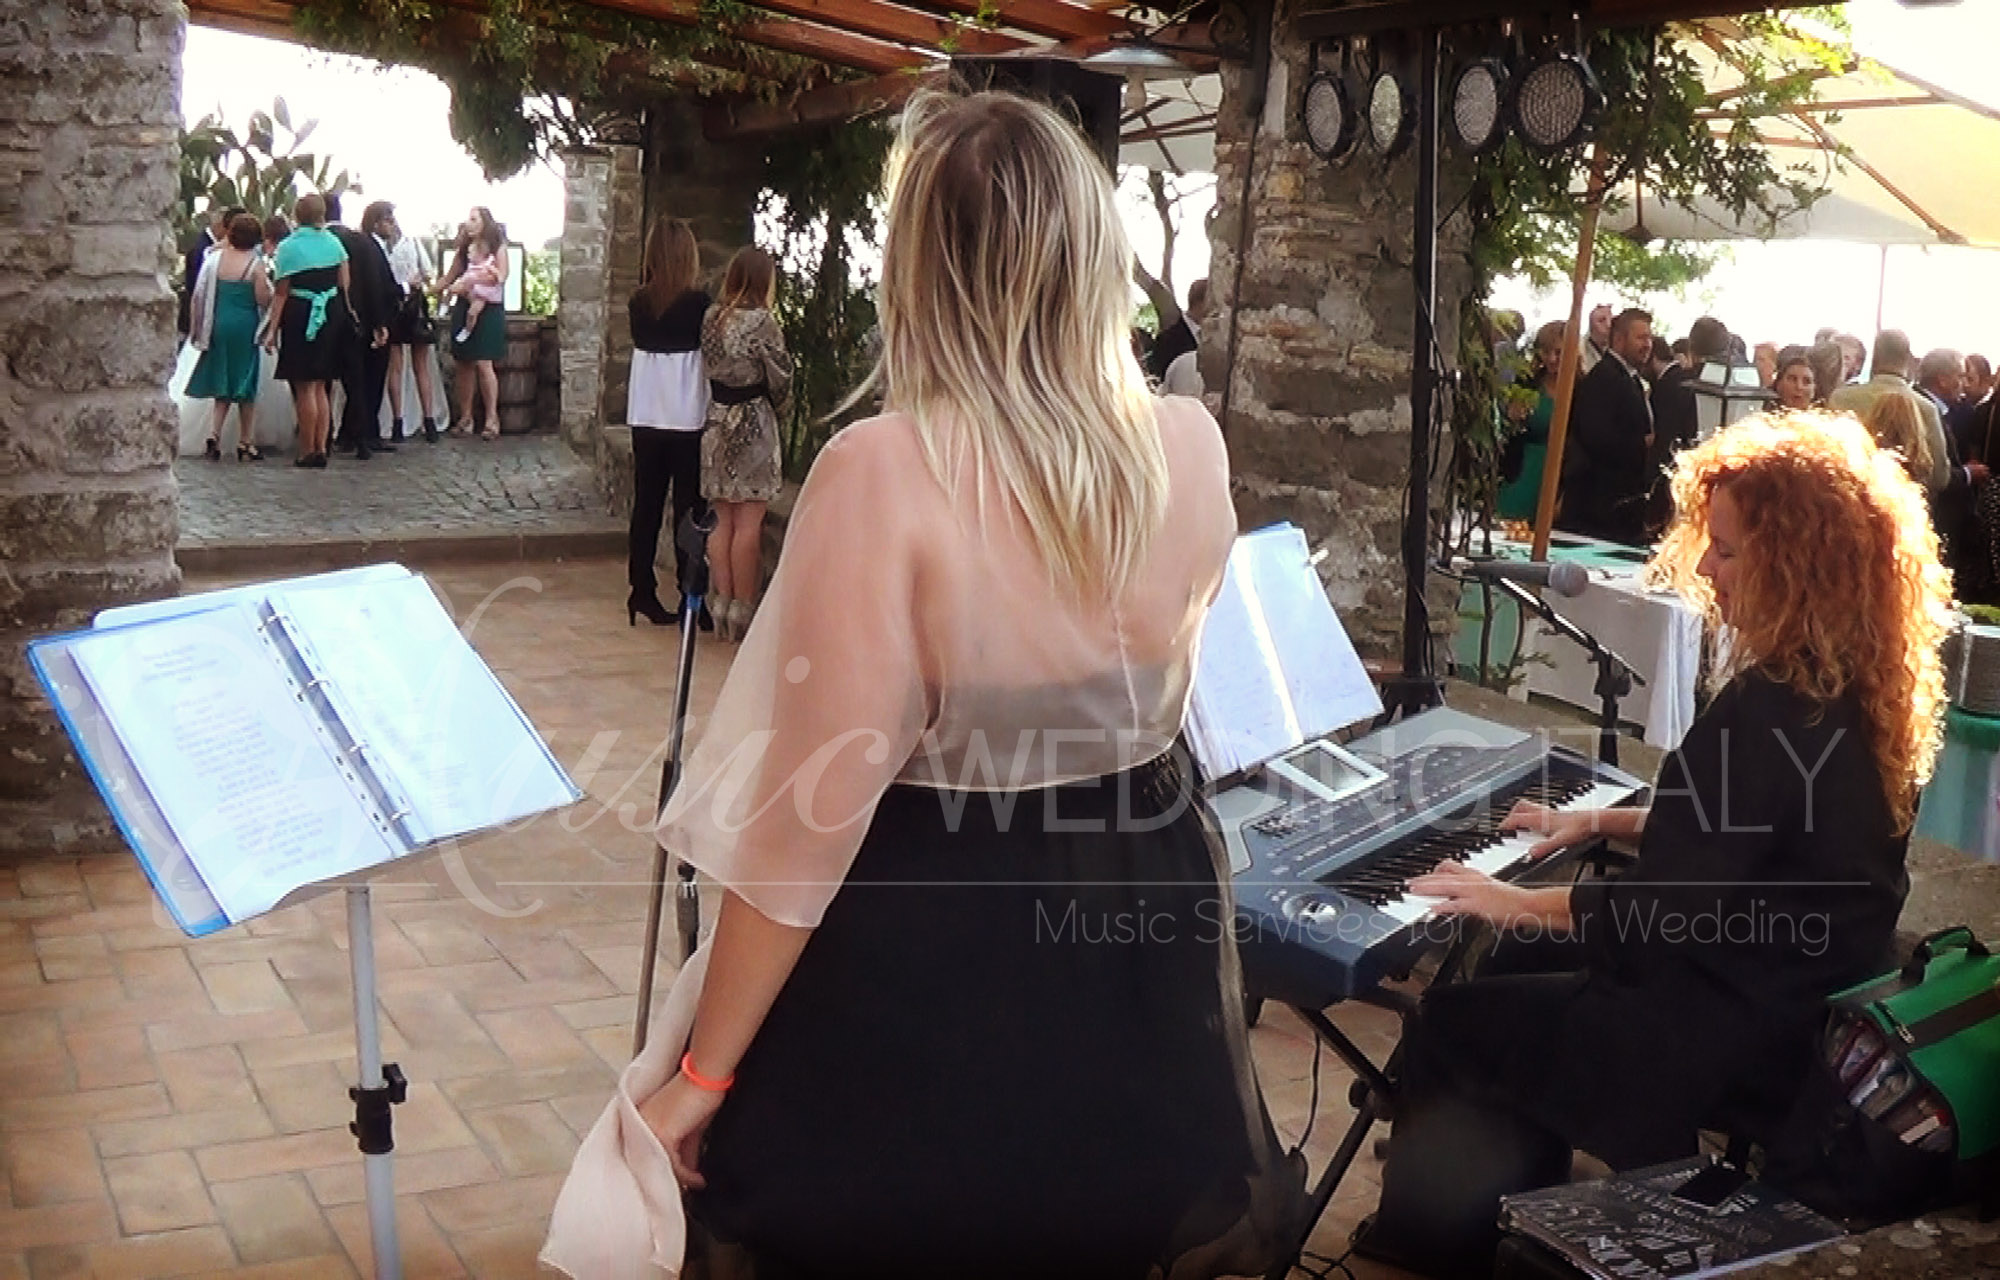 pianobar a roma, pianobar per matrimonio, duo pianobar feste private